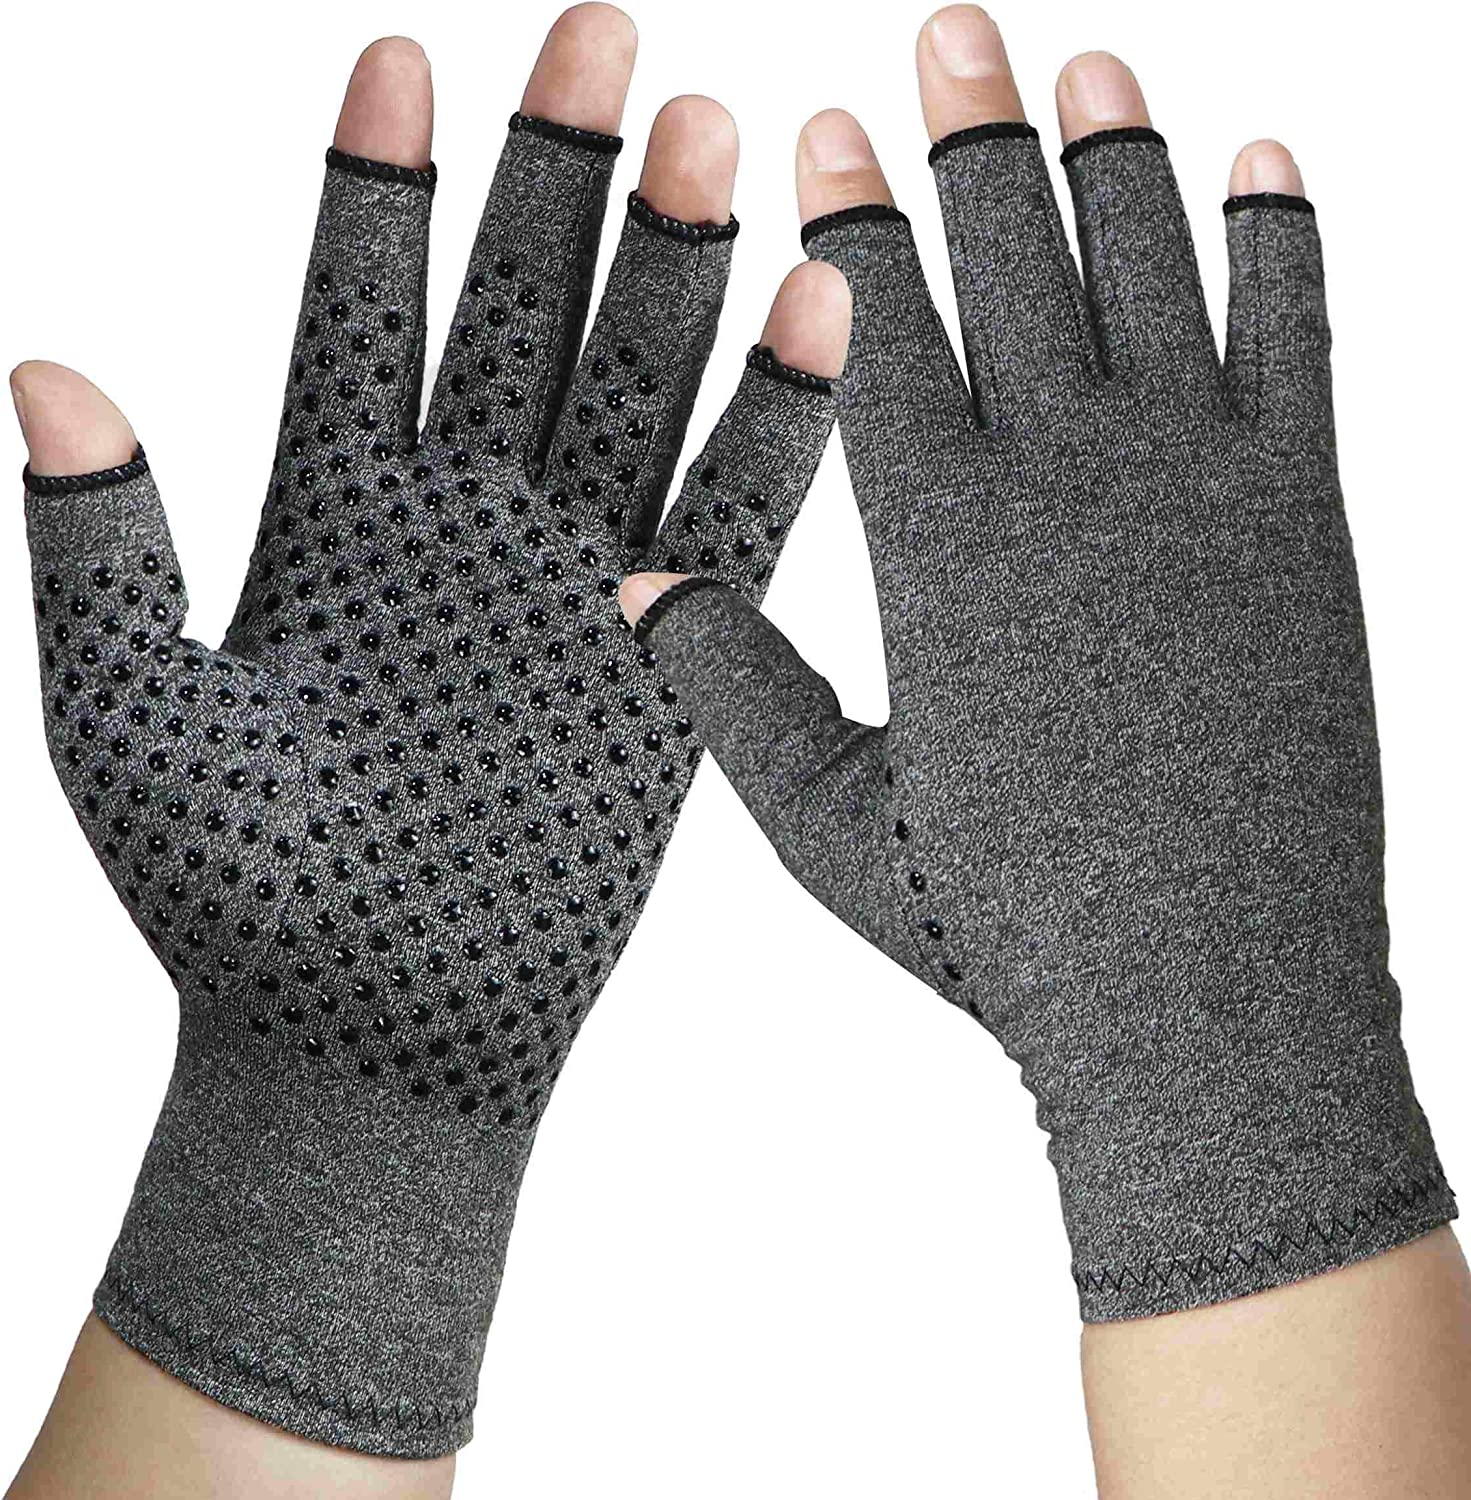 Arthritis Gloves Compression Glove for Arthritis for Women and Men-Ease Rheumatoid, Osteoarthritis Swelling,Osteoarthritis,Muscle Tension and Computer Typing (1 Pair) (M)